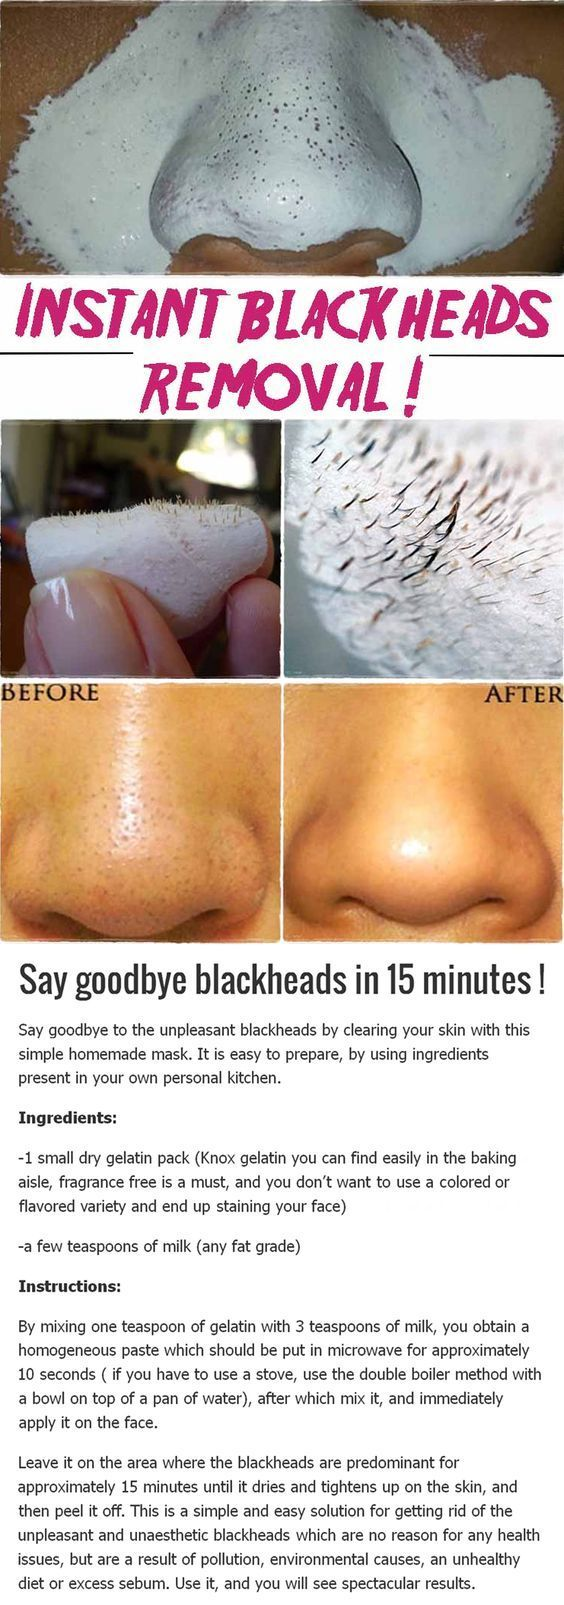 SAY GOODBYE BLACKHEADS IN 15 MINUTES